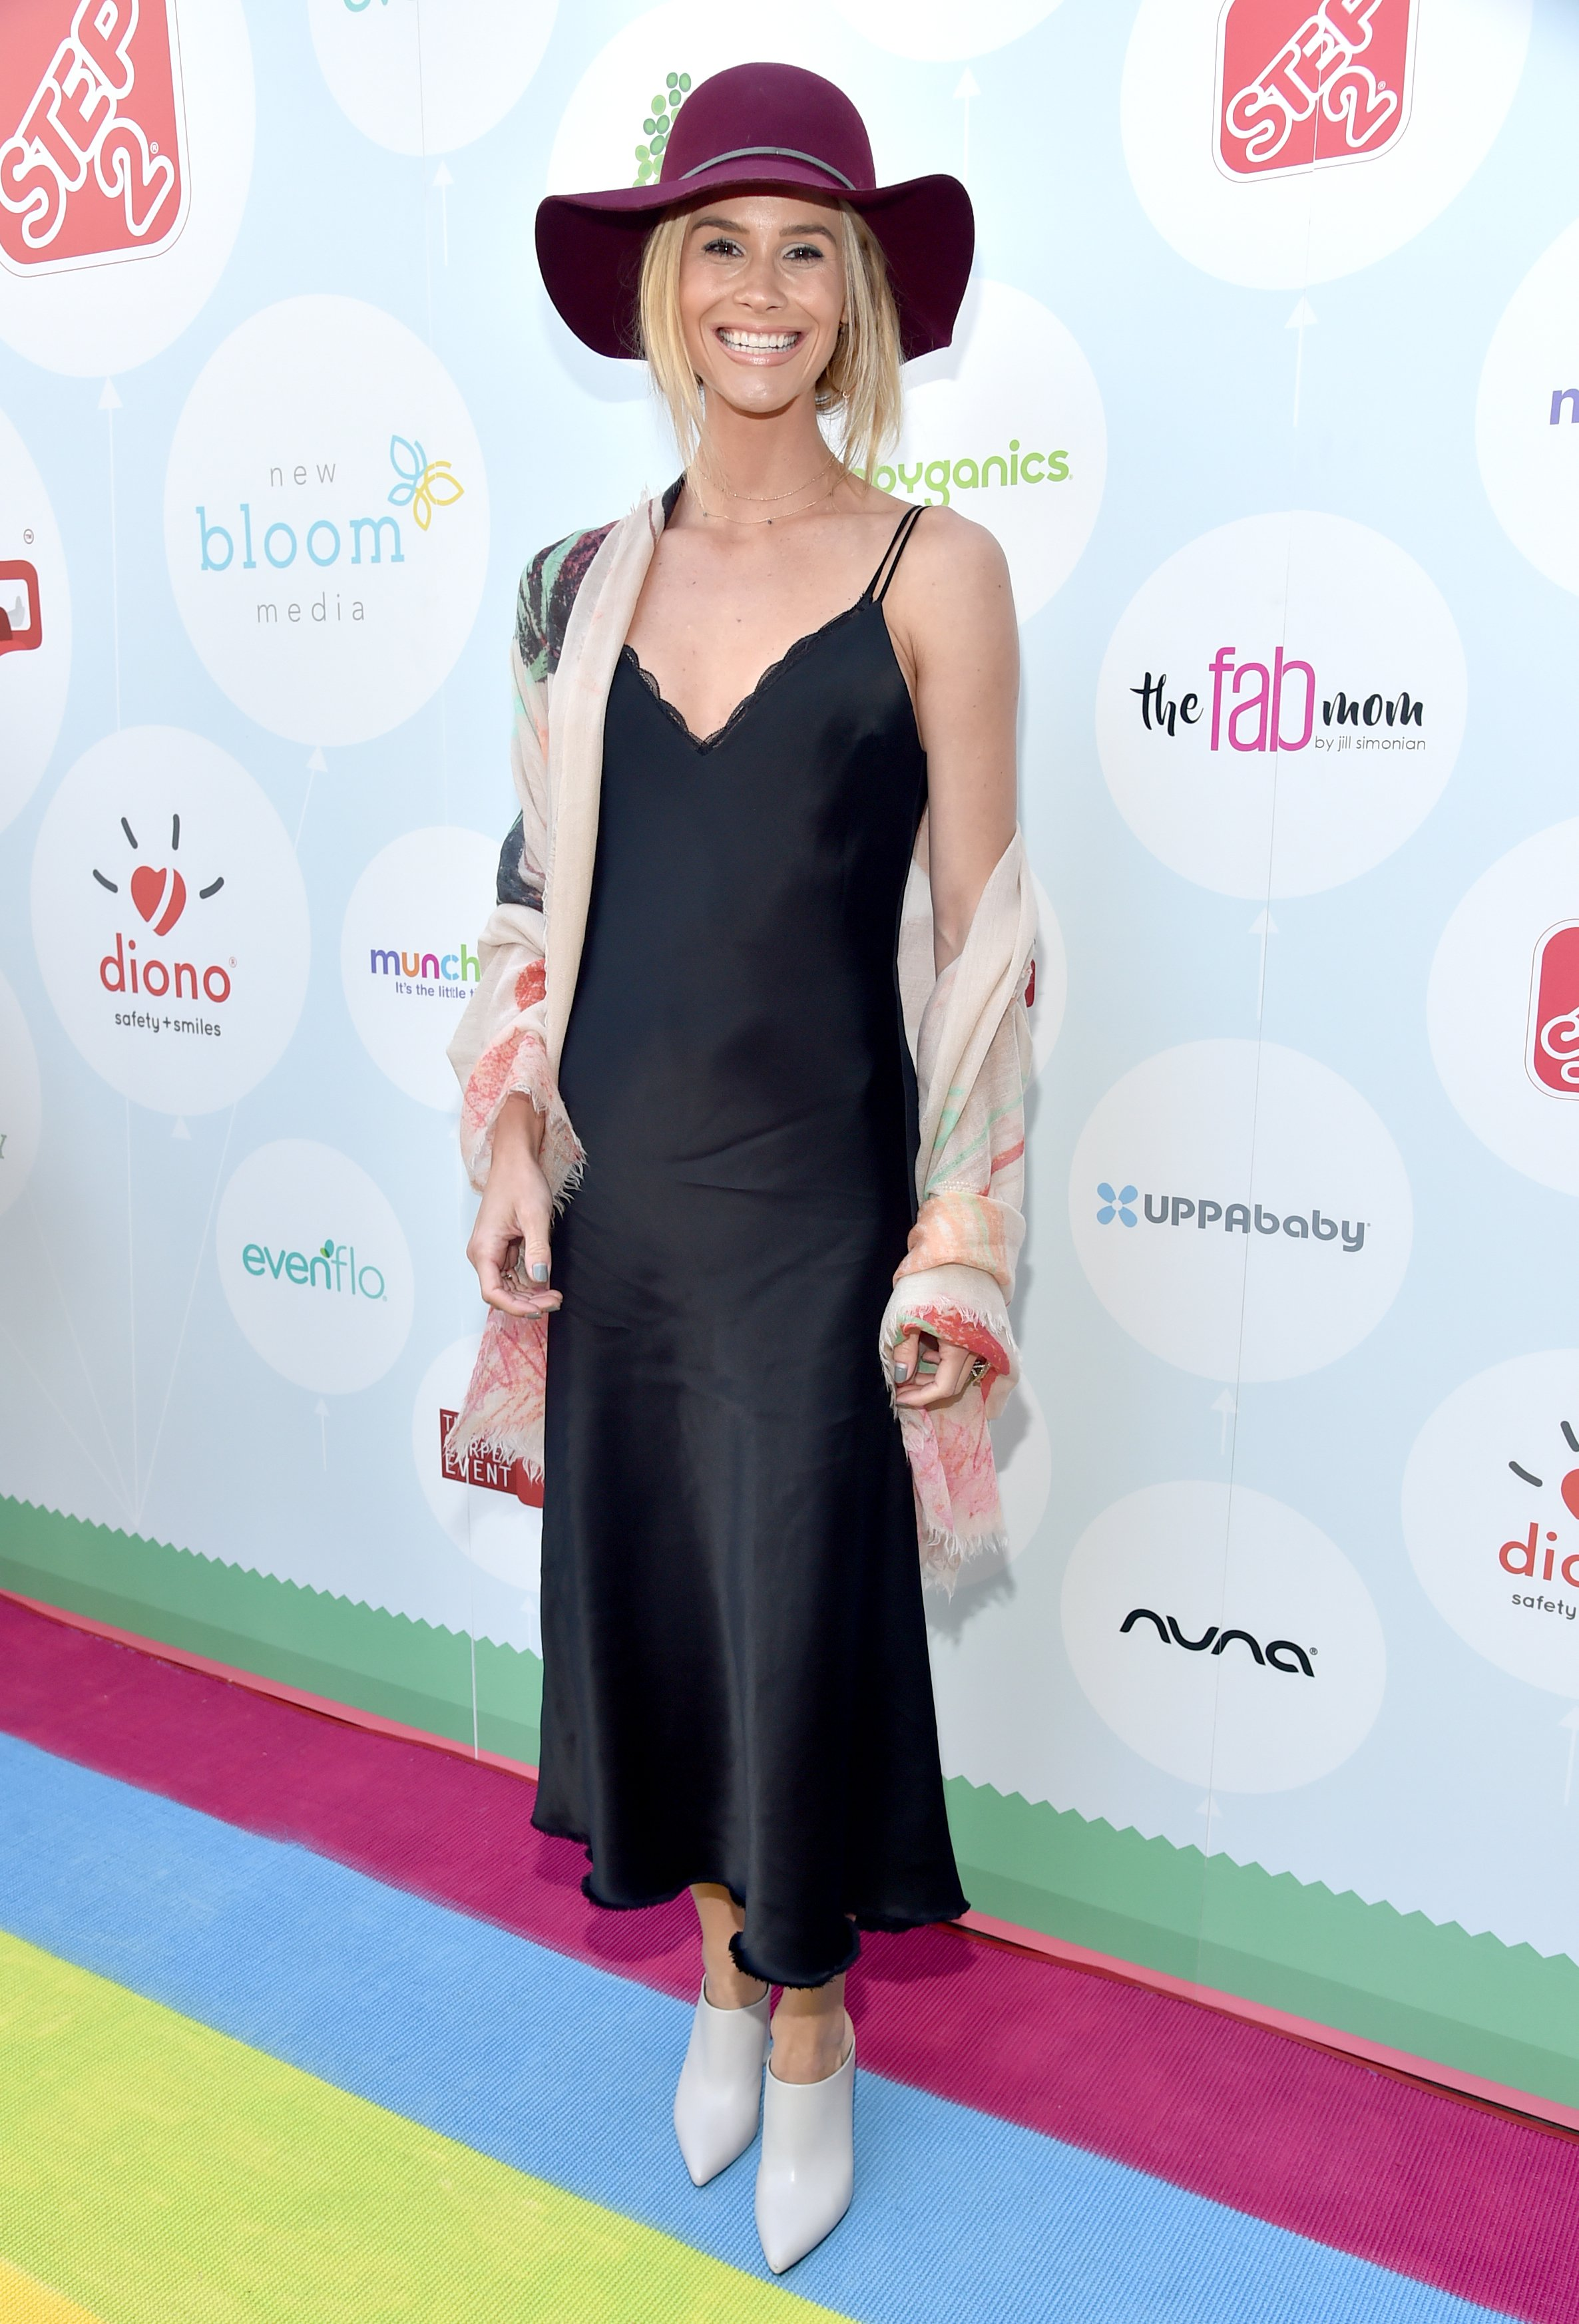 Meghan King Edmonds at Step 2 Presents 6th Annual Celebrity Red CARpet Safety Awareness Event on September 23, 2017, in Culver City, California. | Source: Getty Images.